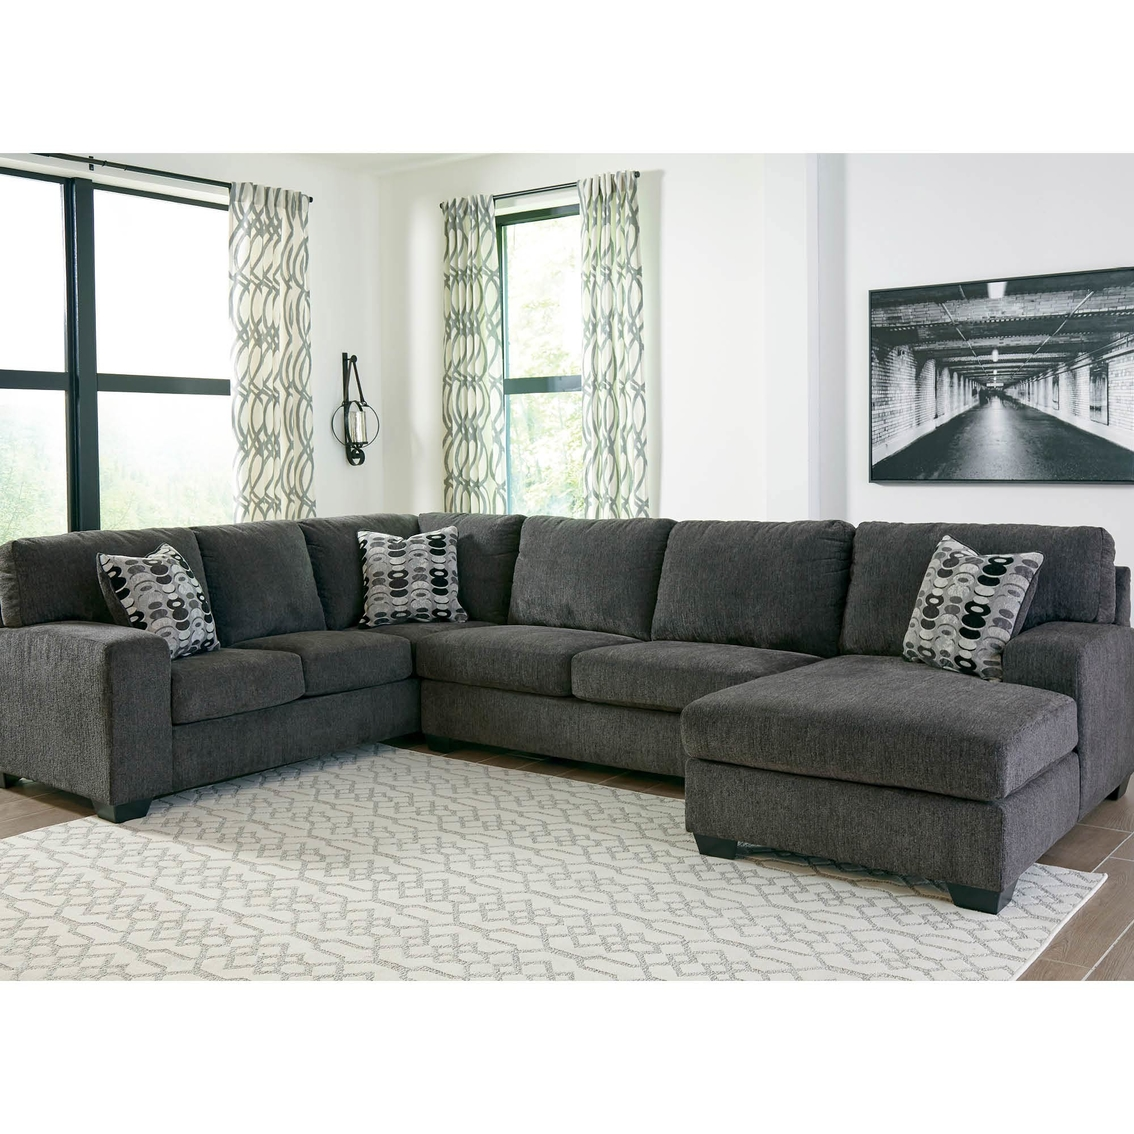 Signature Design By Ashley Ballinasloe 3 Pc. Sectional Raf Chaise ...